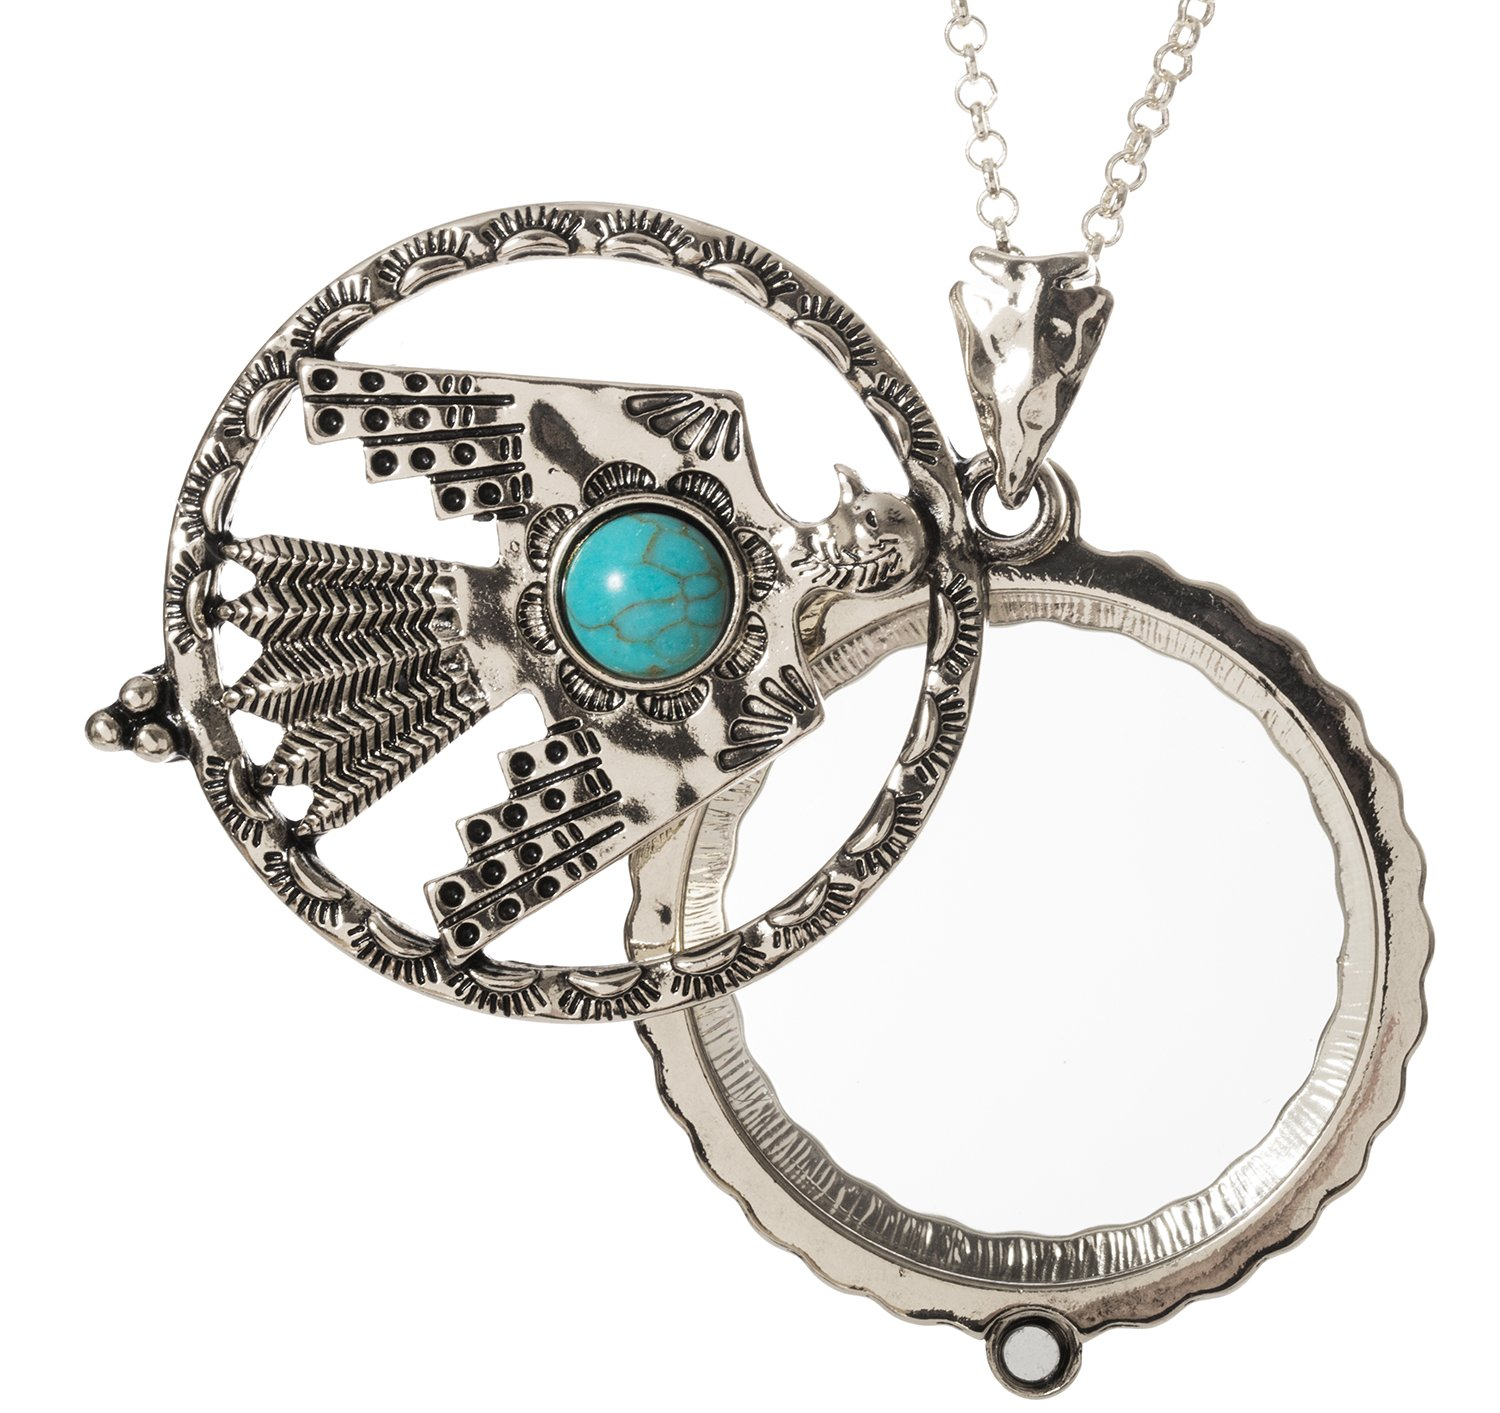 Thunderbird Turquoise Stone 4x Magnifier Magnifying Glass Sliding Top Magnet Pendant Necklace, 30'' (Silver Tone)